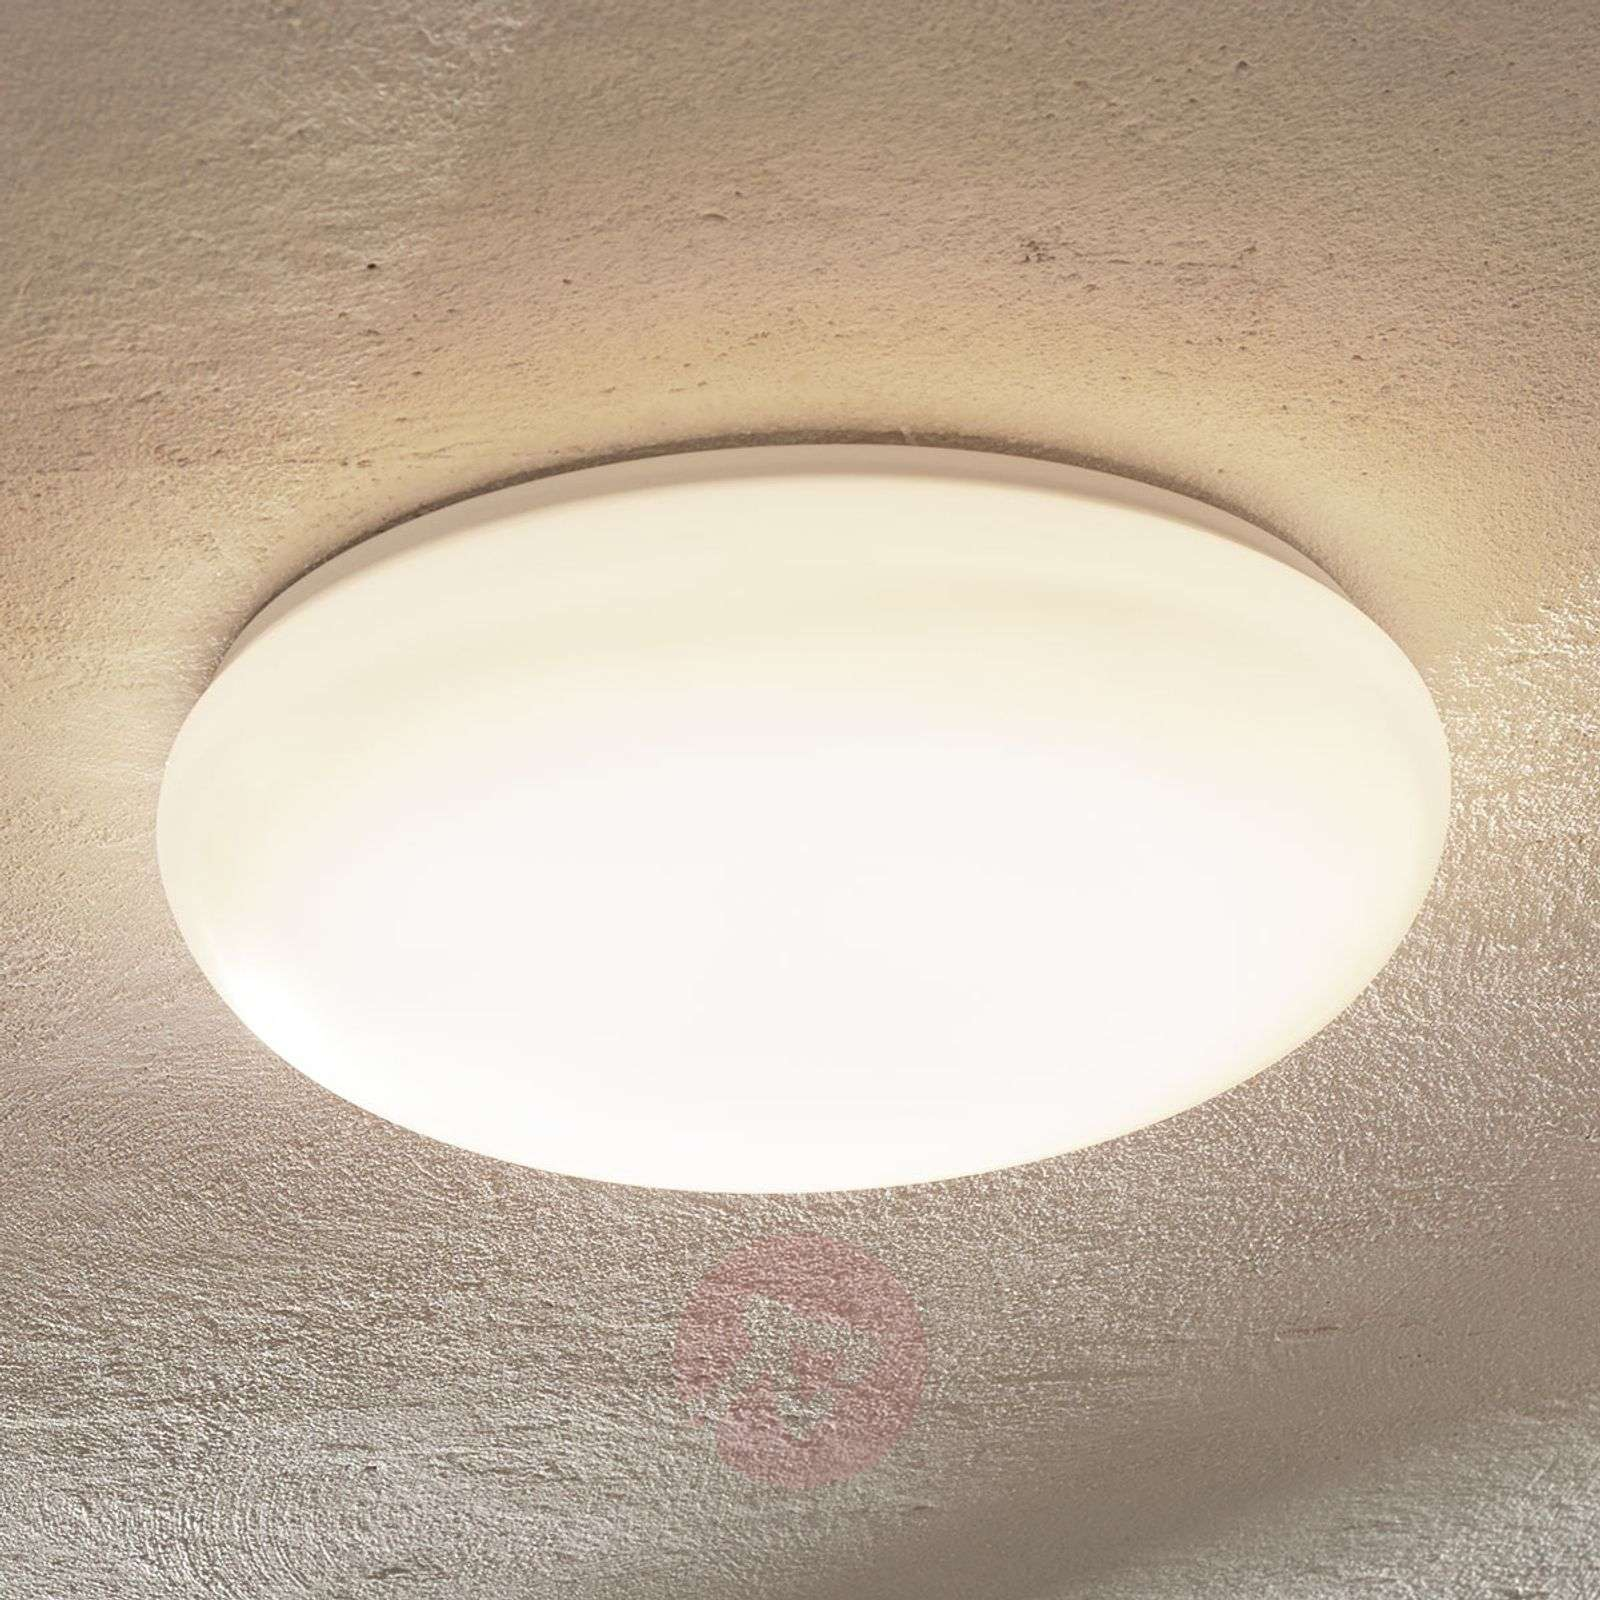 Round sensor ceiling light Altona with LEDs-6022355-01